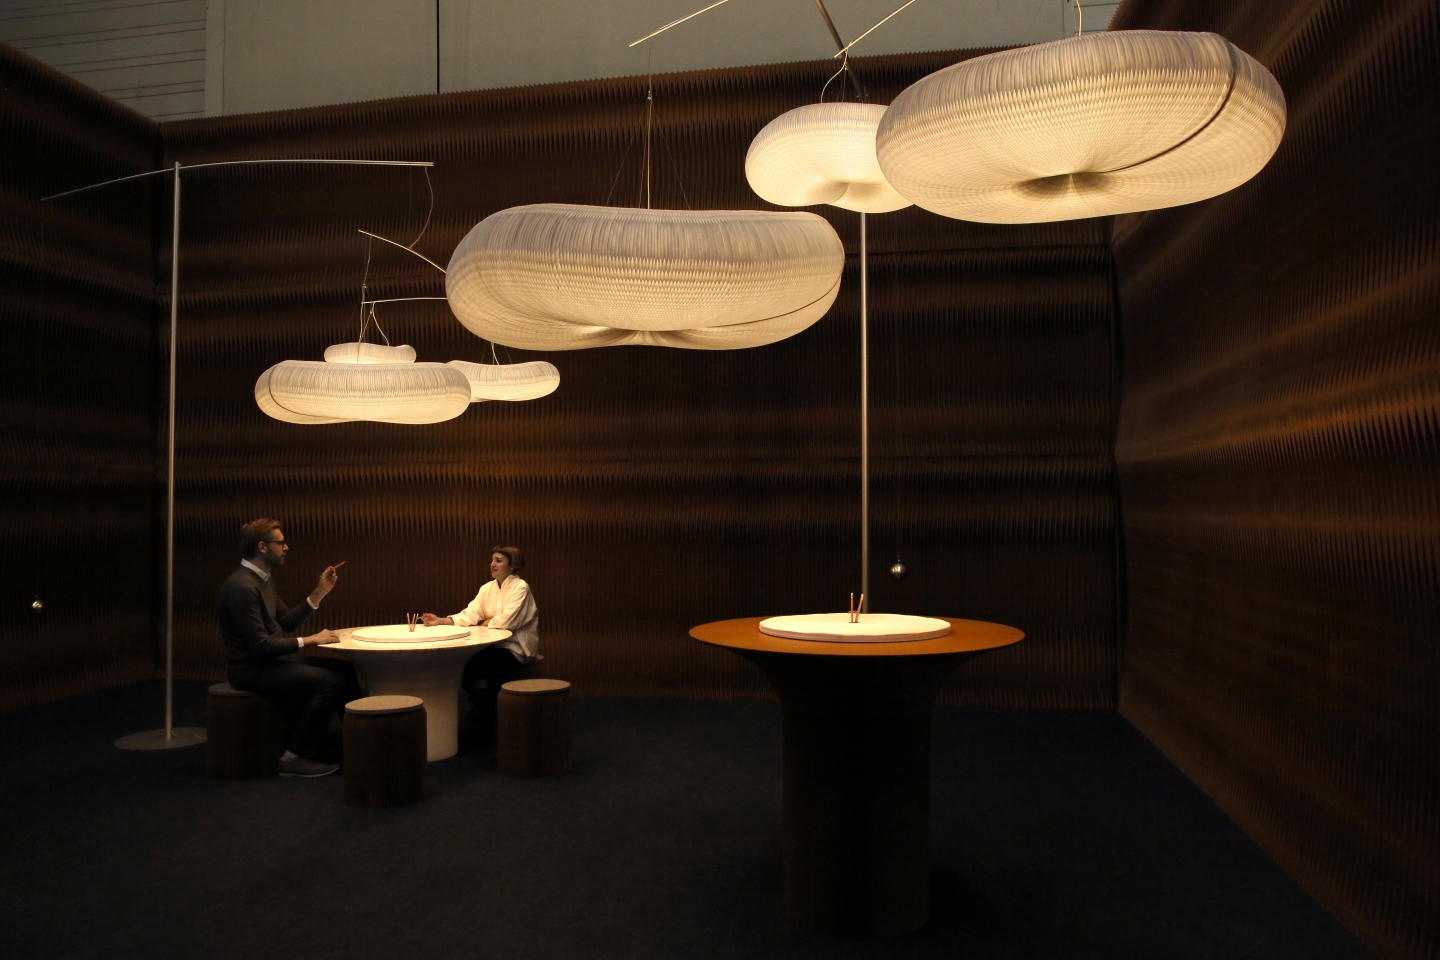 paper accordion seating, furniture and lighting by molo - two people work at a cantilever table under a sky of cloud softlight